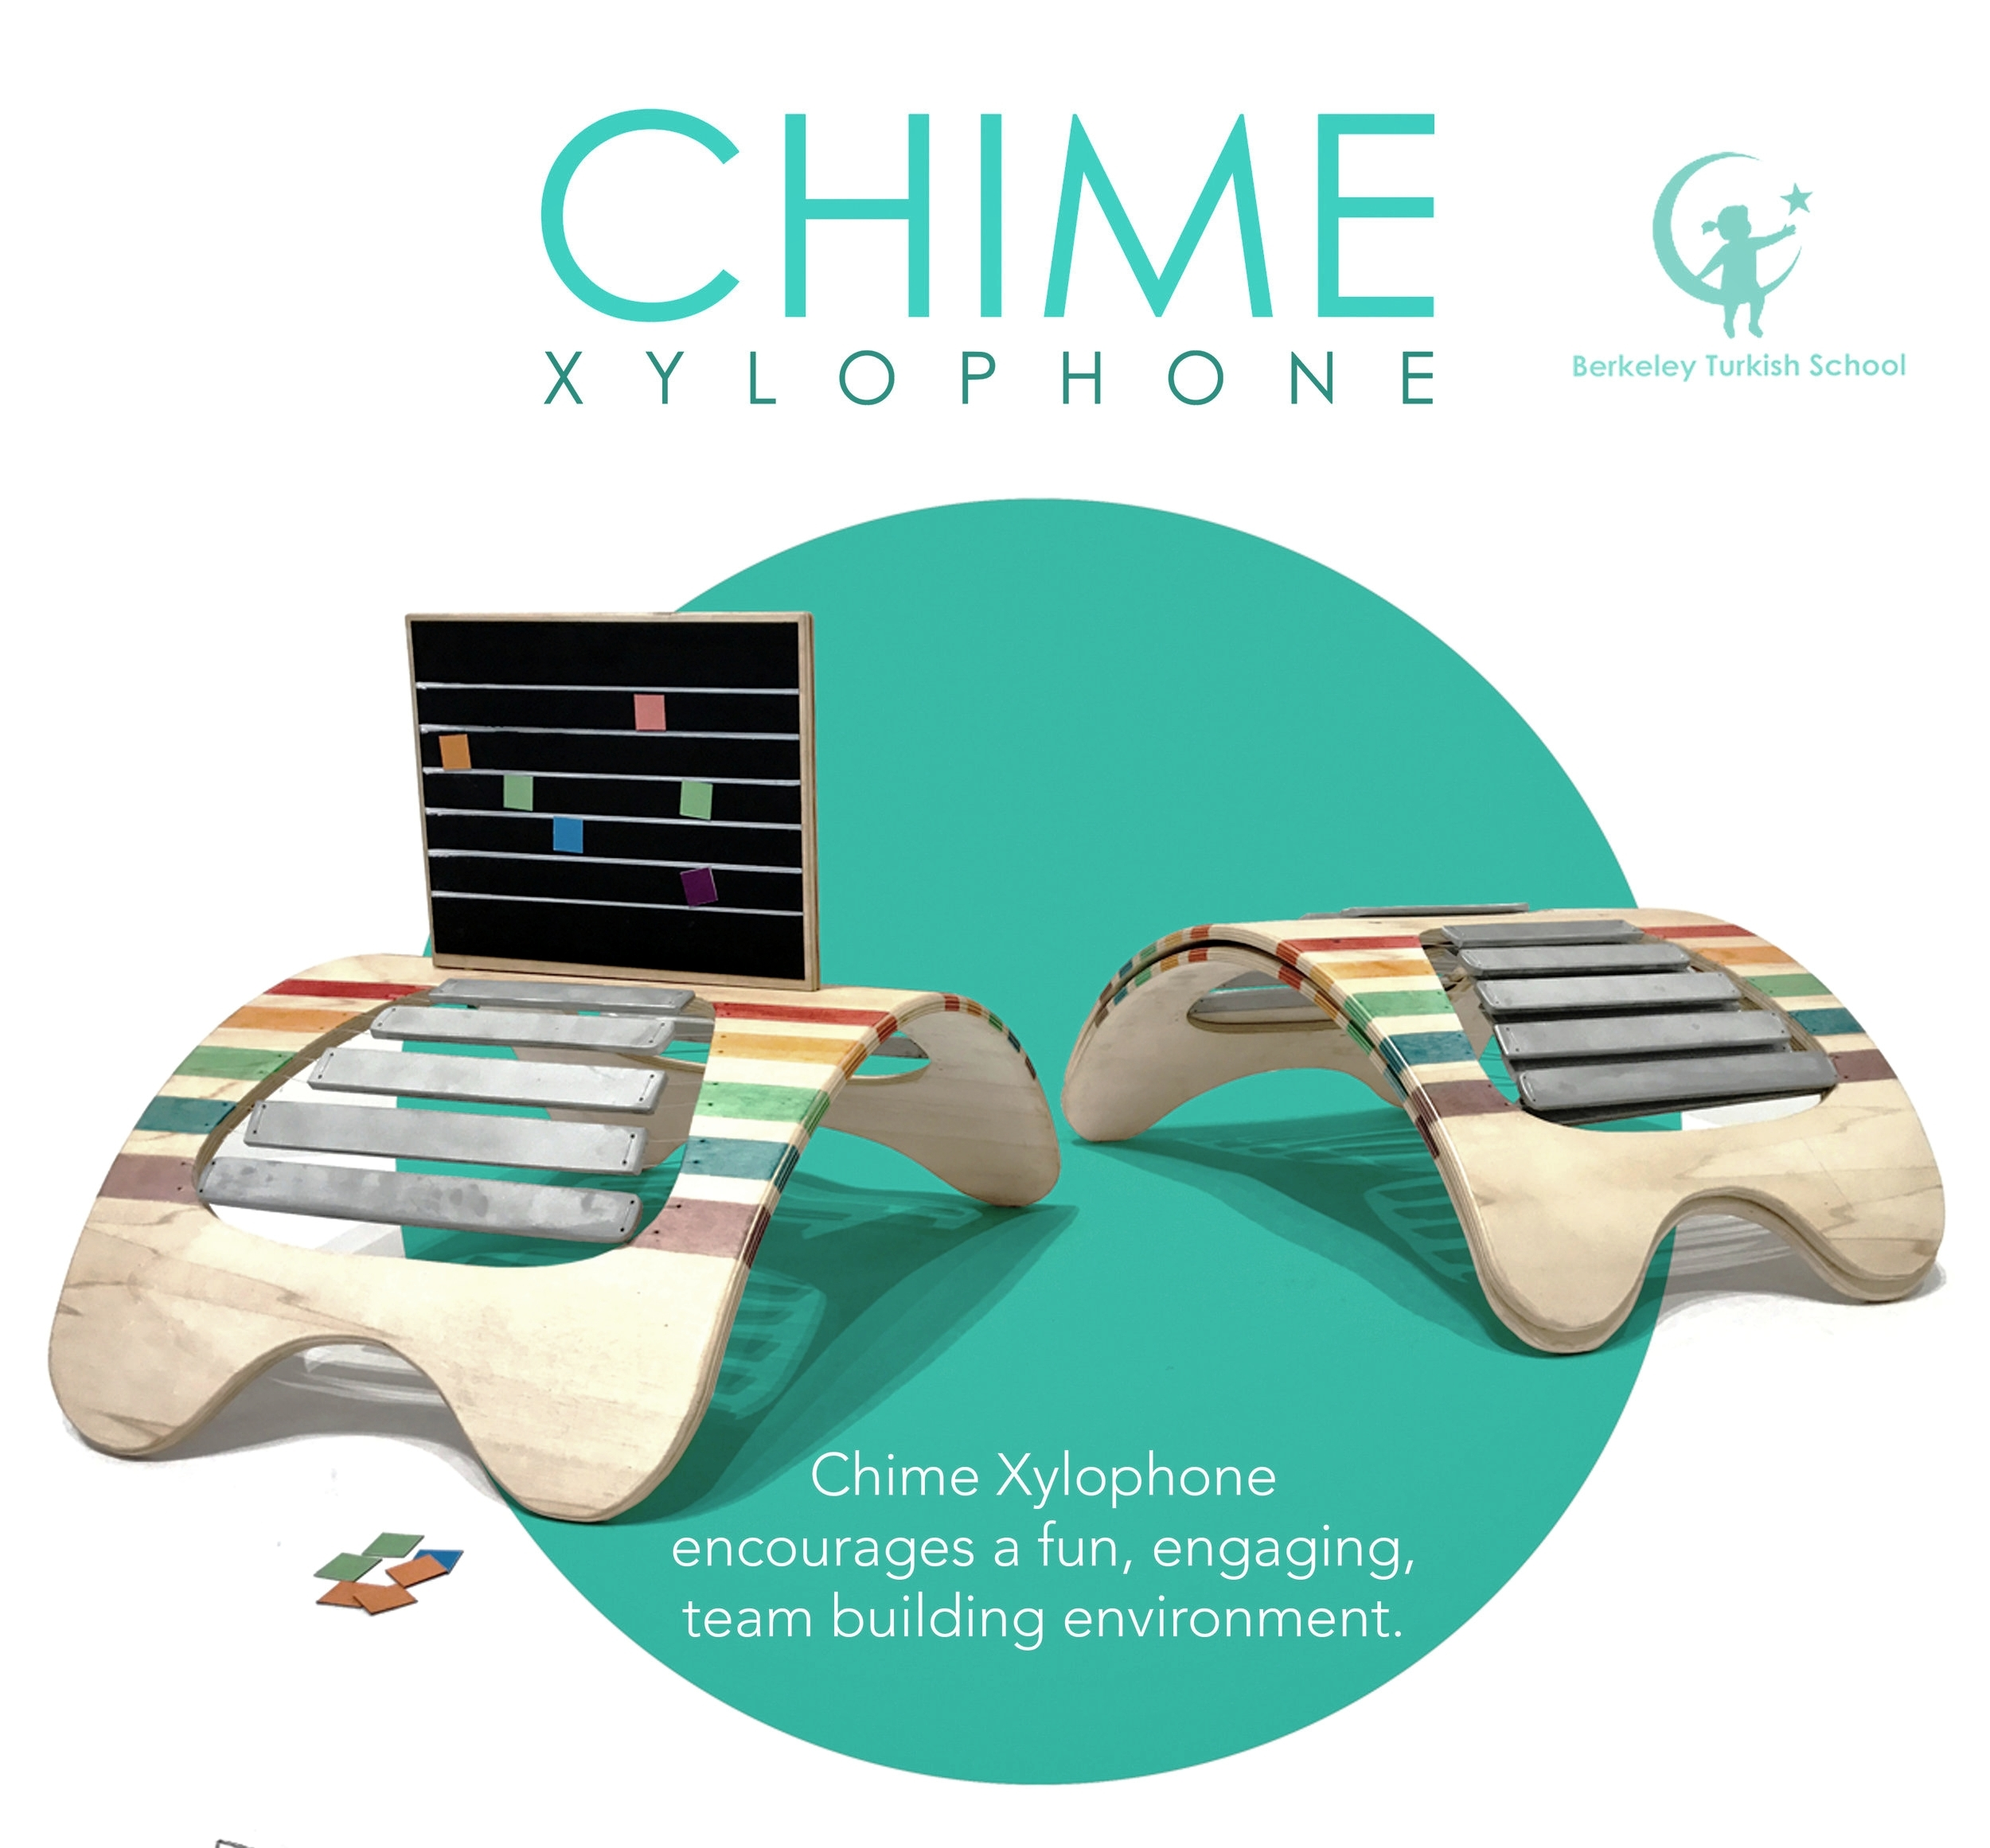 CHIME XylophoneA study in the universal language of music - Inspired by the premise that language of music is universal, in the Spring 2017 Semester Industrial Design students Hugo Waldern & Xander Tocher in Başak Altan's class designed this collaborative music education tool for BTS.Chime Xylophone's goal is to enhance the class dynamic by encouraging children to both play individually and as well as in a team.